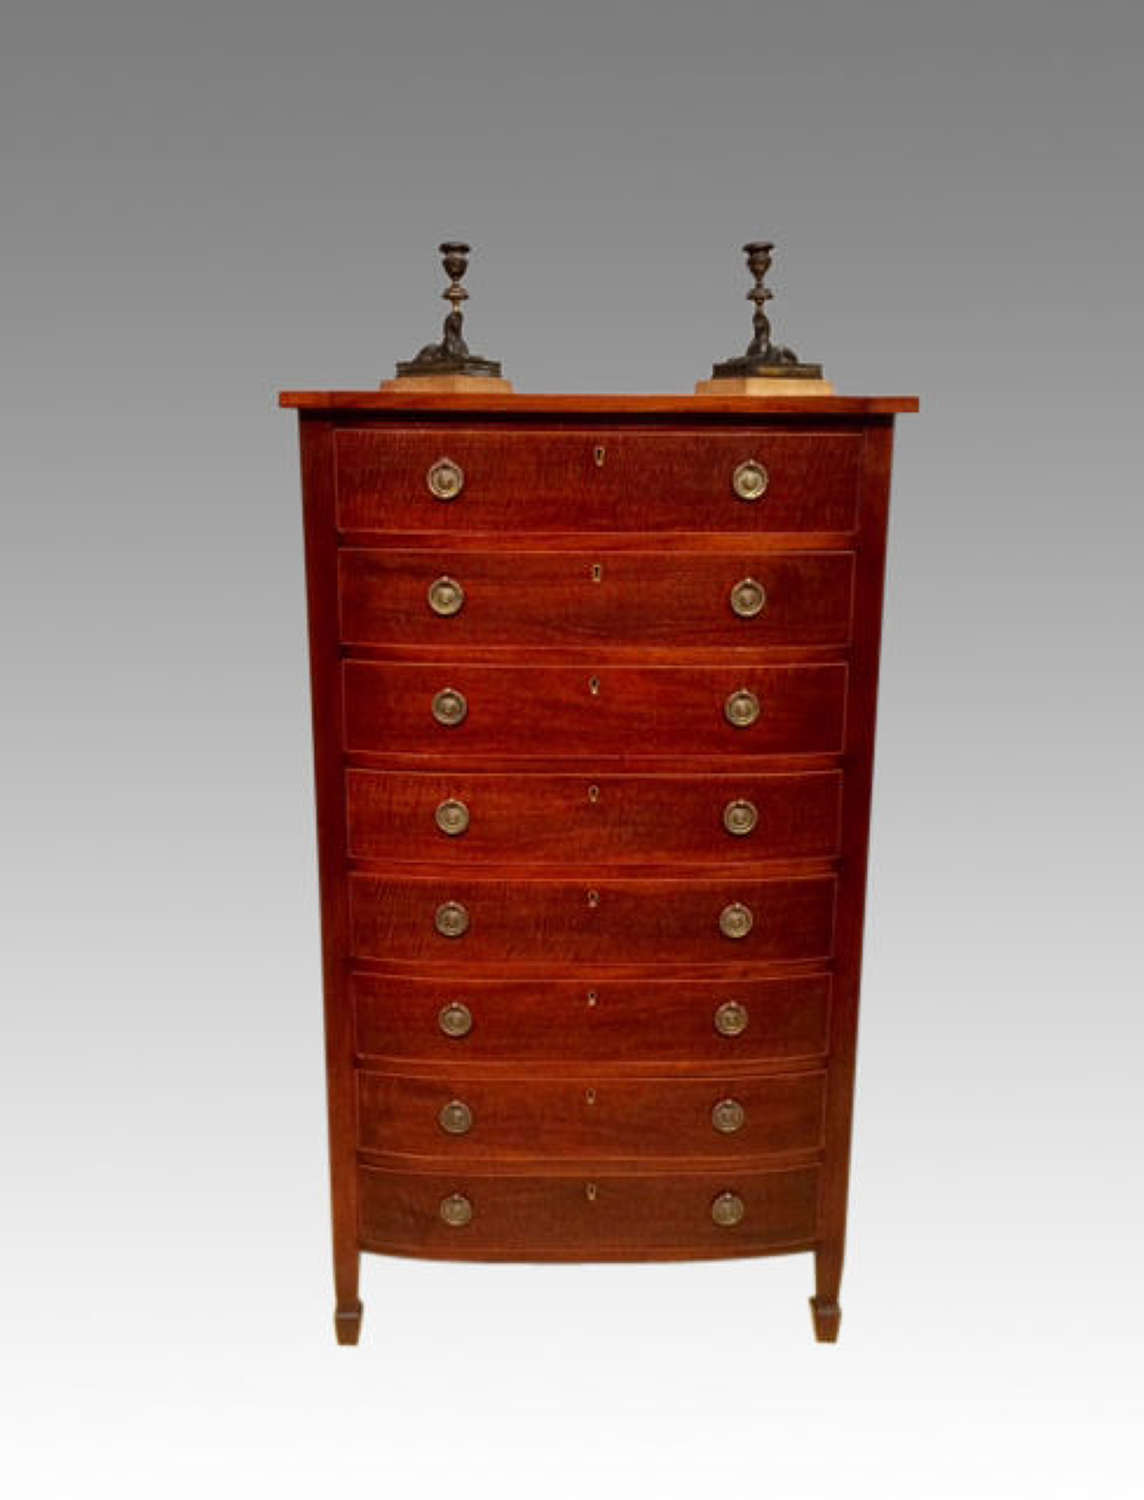 19th century mahogany  bow fronted chest of drawers